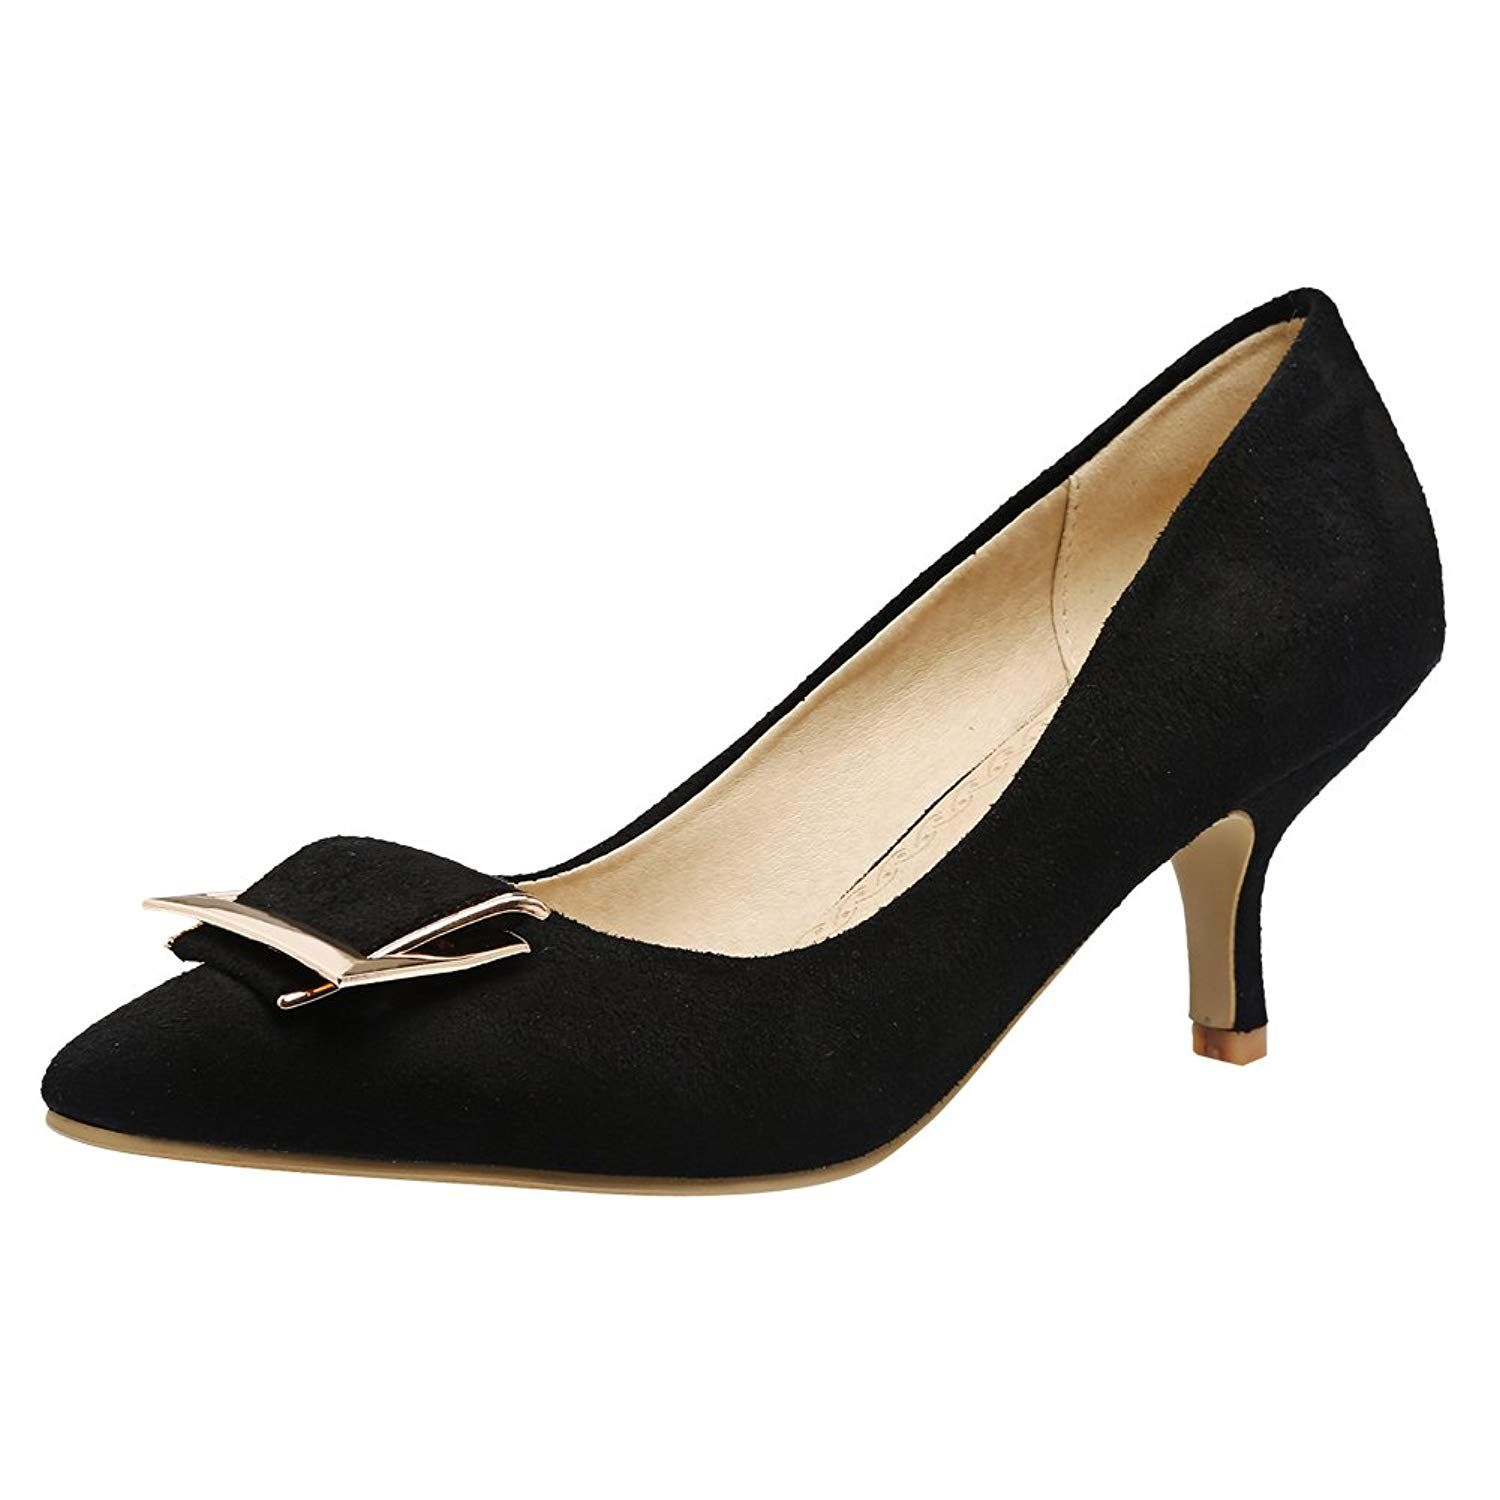 ea77a9088d4 Latasa Women s Faux Suede Pointed-toe Kitten Heels Pumps. Latasa Company is  a collection